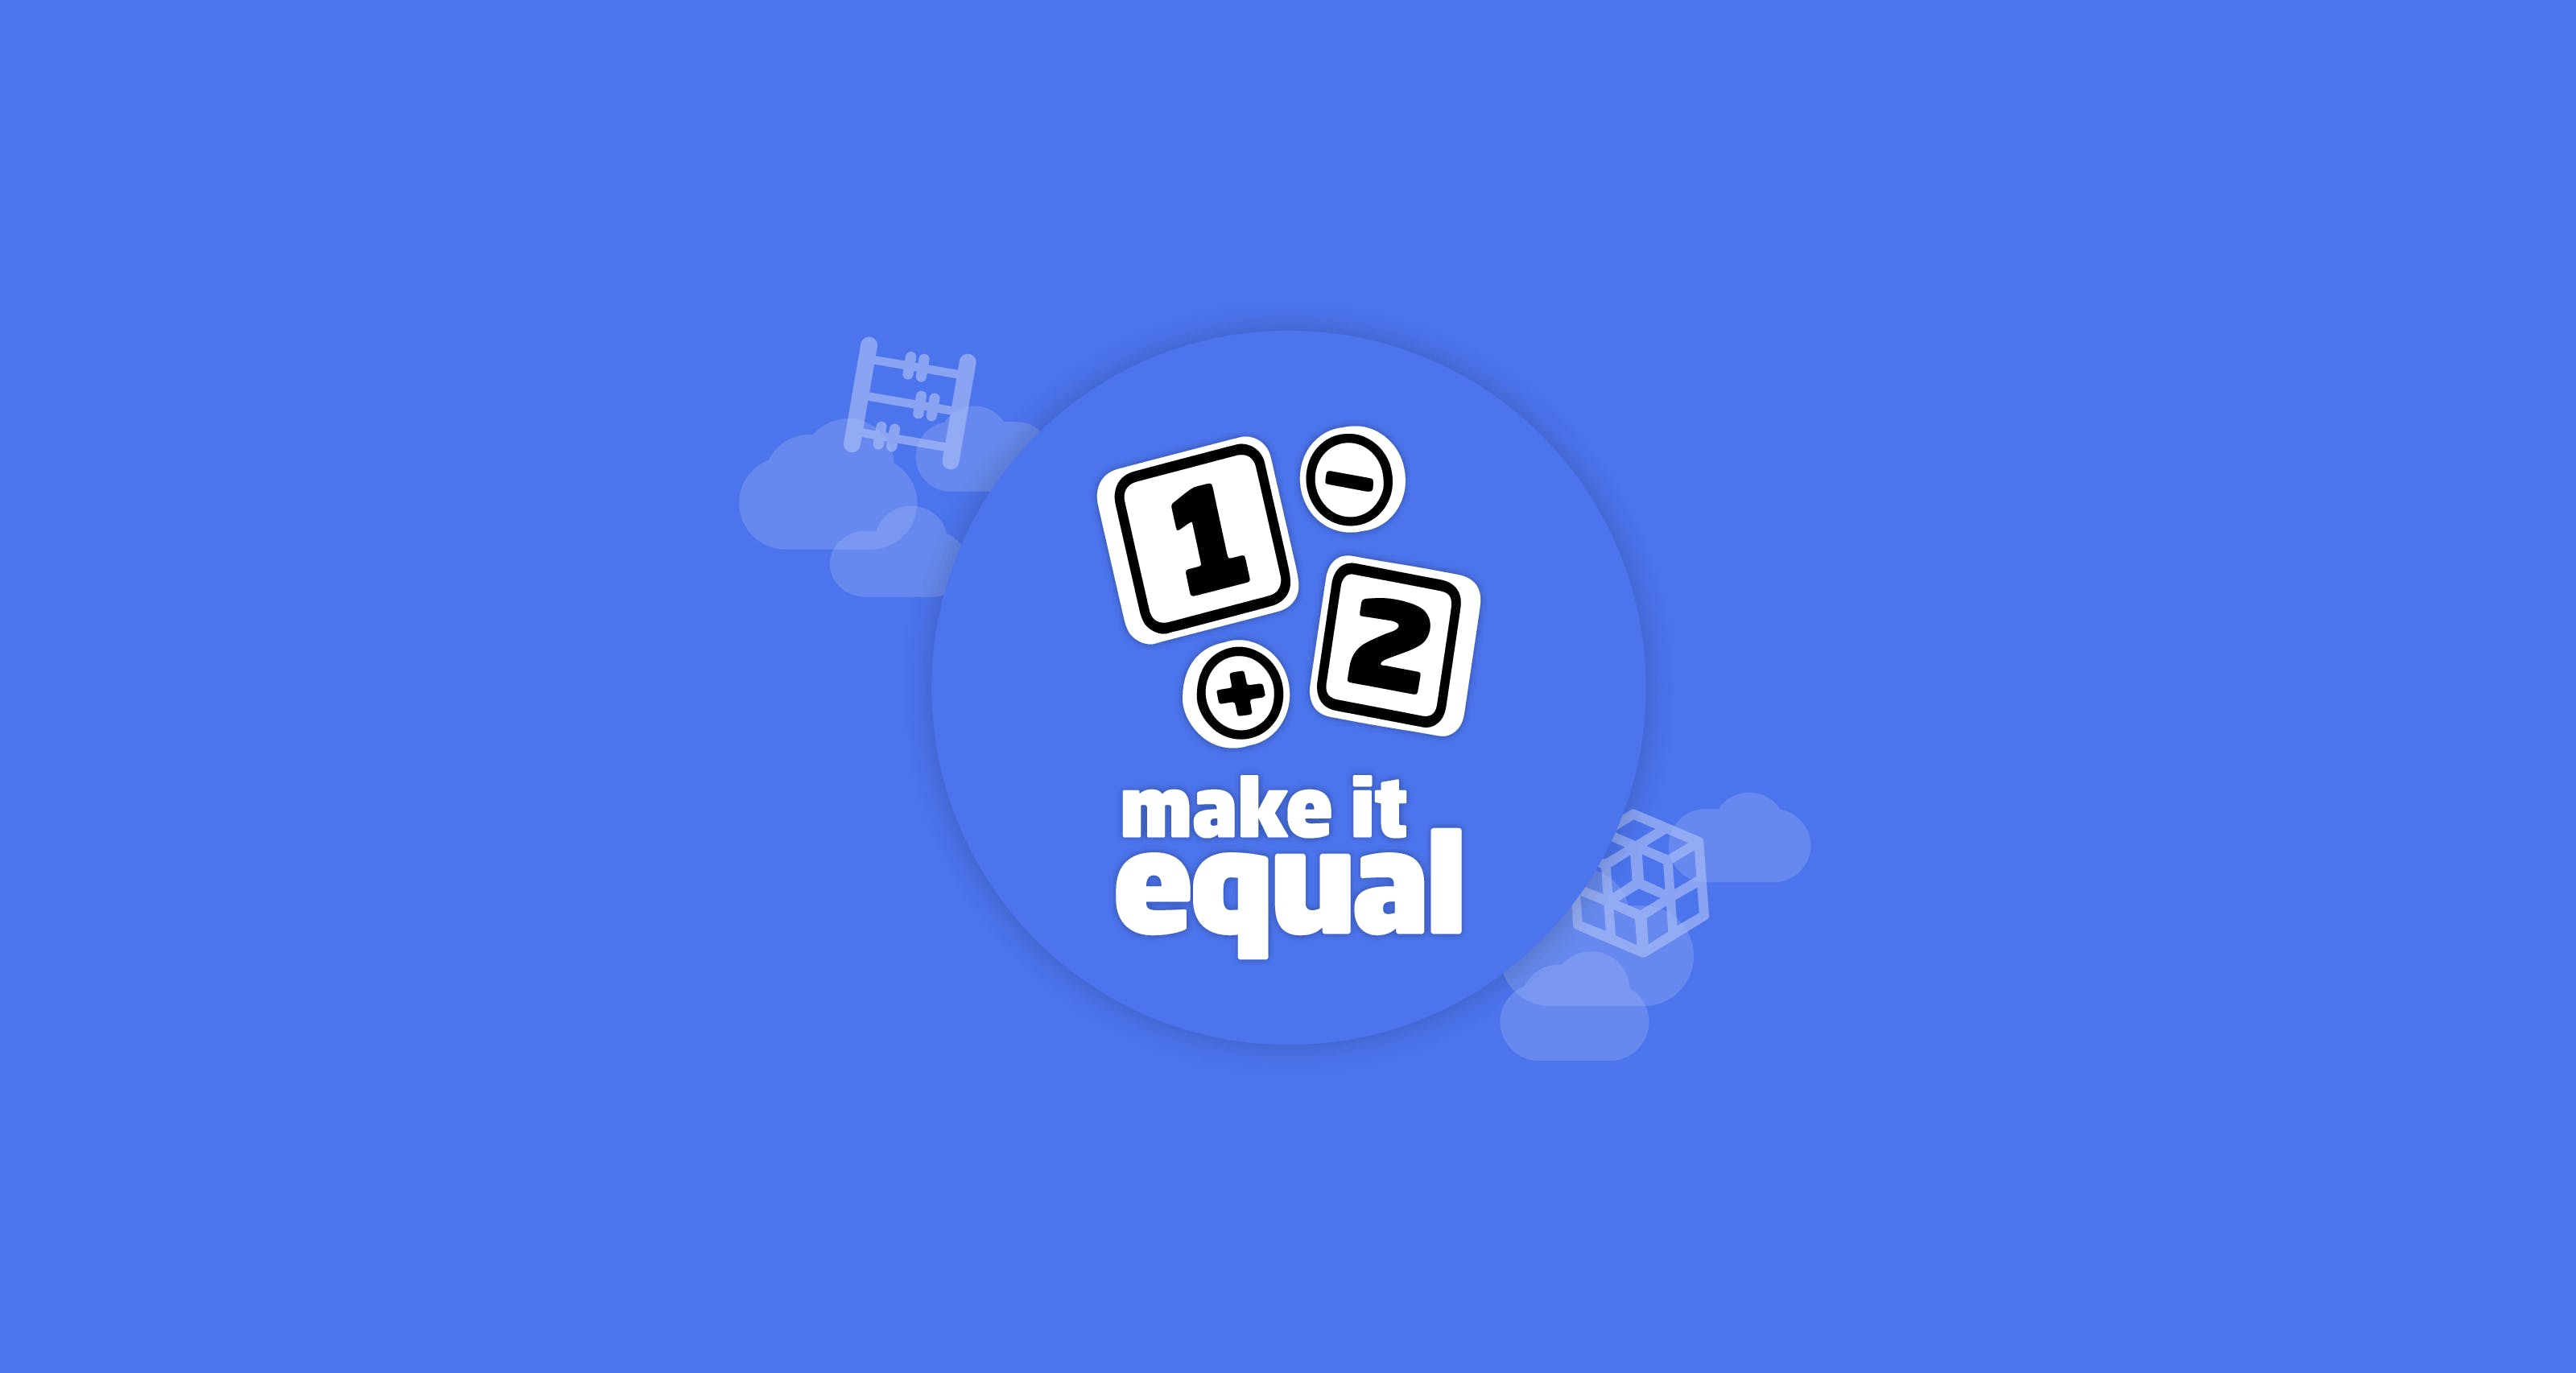 Make it equal